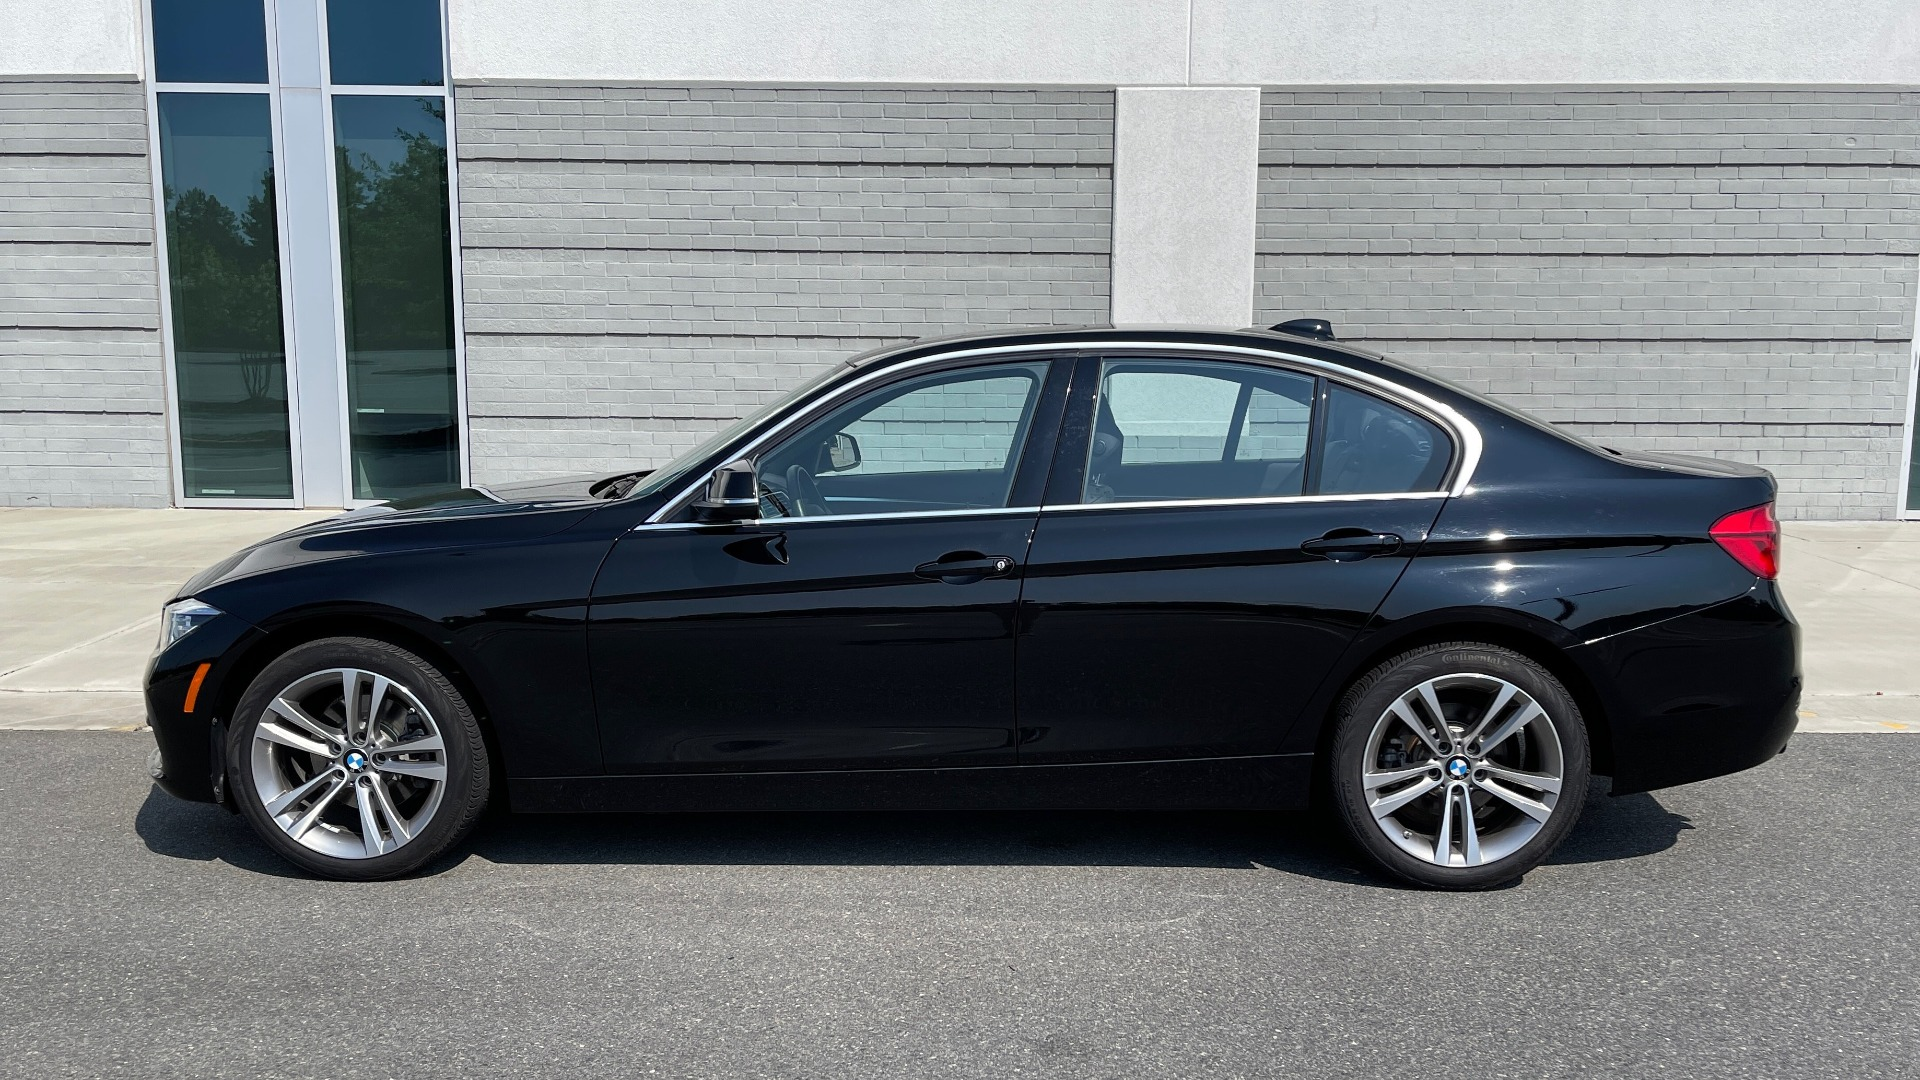 Used 2018 BMW 3 SERIES 330I XDRIVE / CONV PKG / SUNROOF / HTD STS / ABSD / REARVIEW for sale $30,695 at Formula Imports in Charlotte NC 28227 4